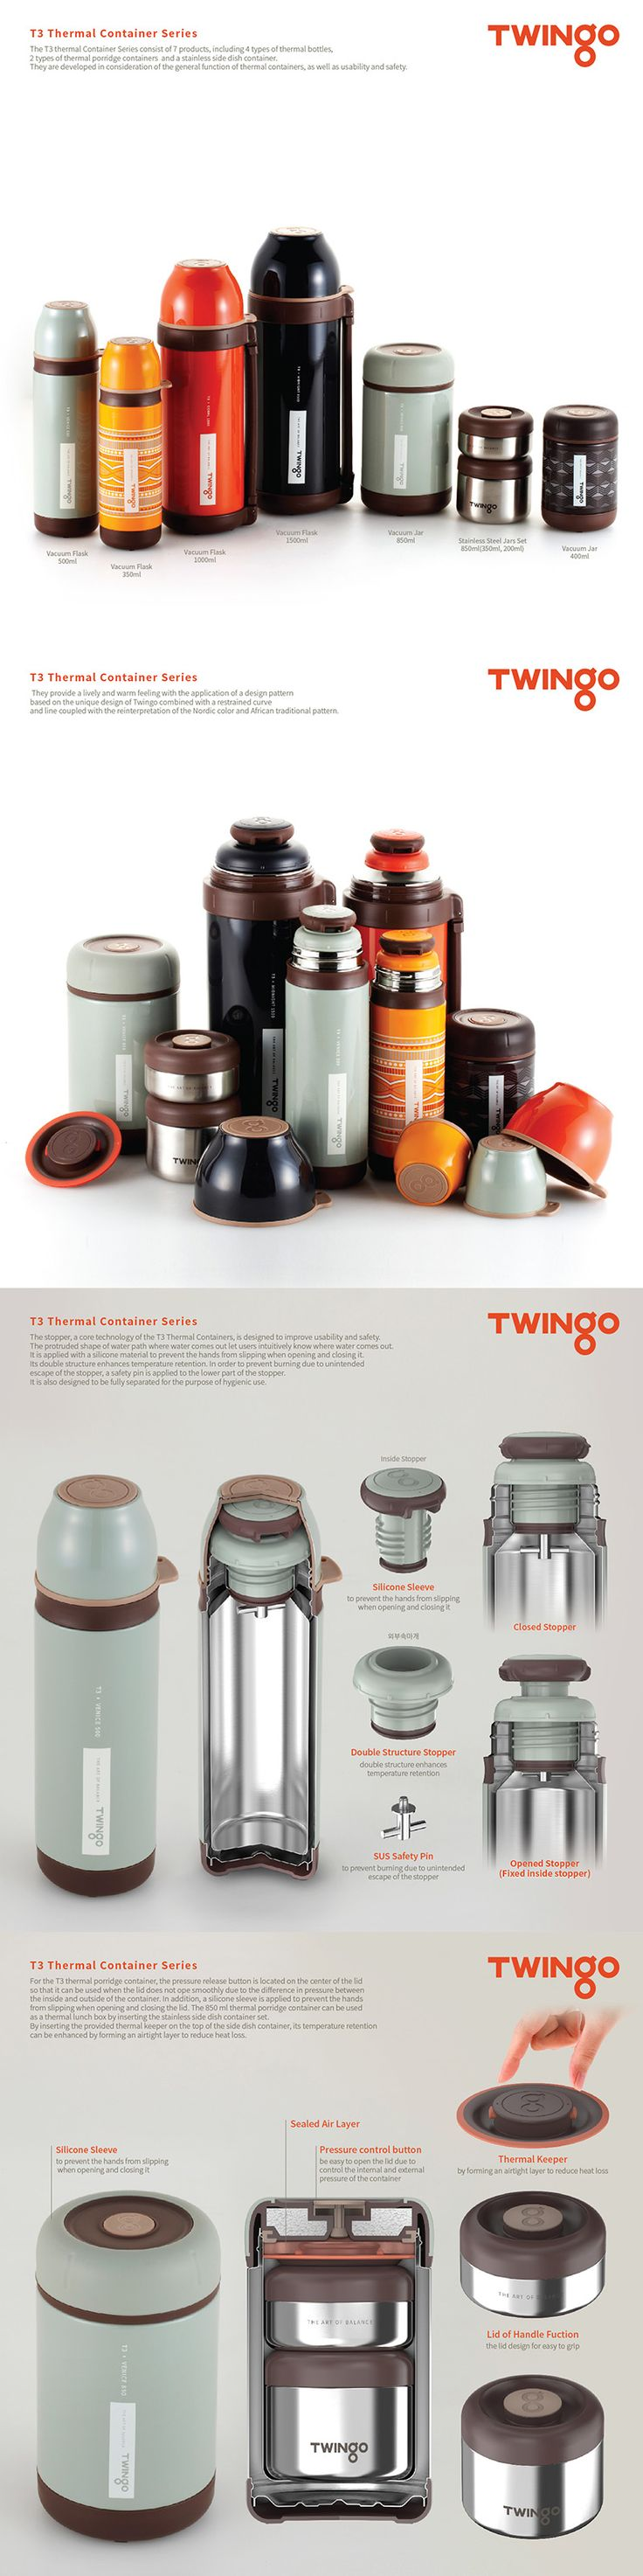 Bring a thermos (ask the crew for hot water) and enjoy your coffee, tea or prepare the baby bottle!! ☕️  http://www.toysonlineusa.com/category/thermos/ Twingo T3 Thermal Container Series, Vacuum flask, Thermos, Food container